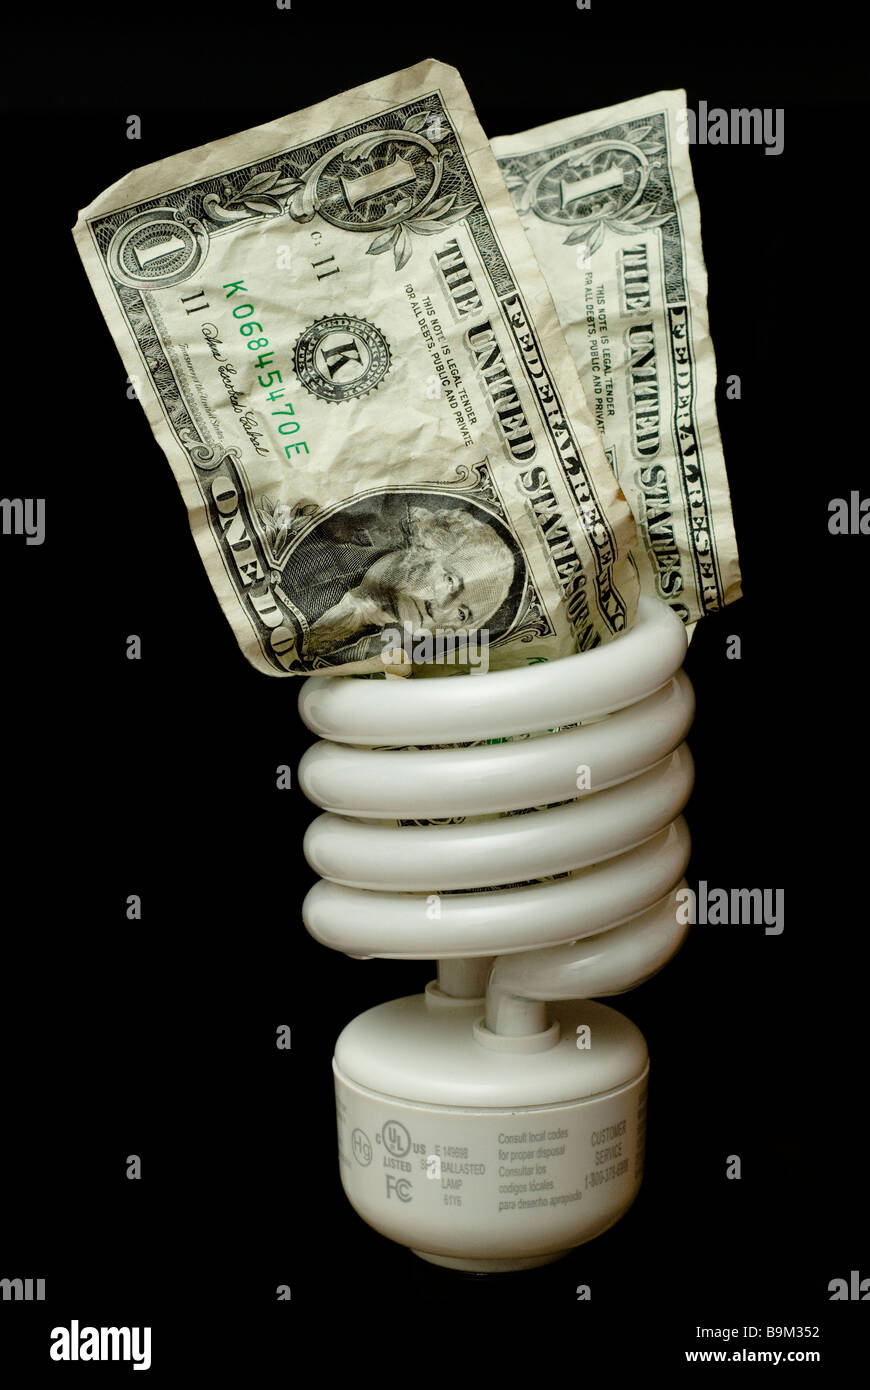 Energy saving lightbulb with two crumpled dollar bills stuck in the top in front of a black background - Stock Image